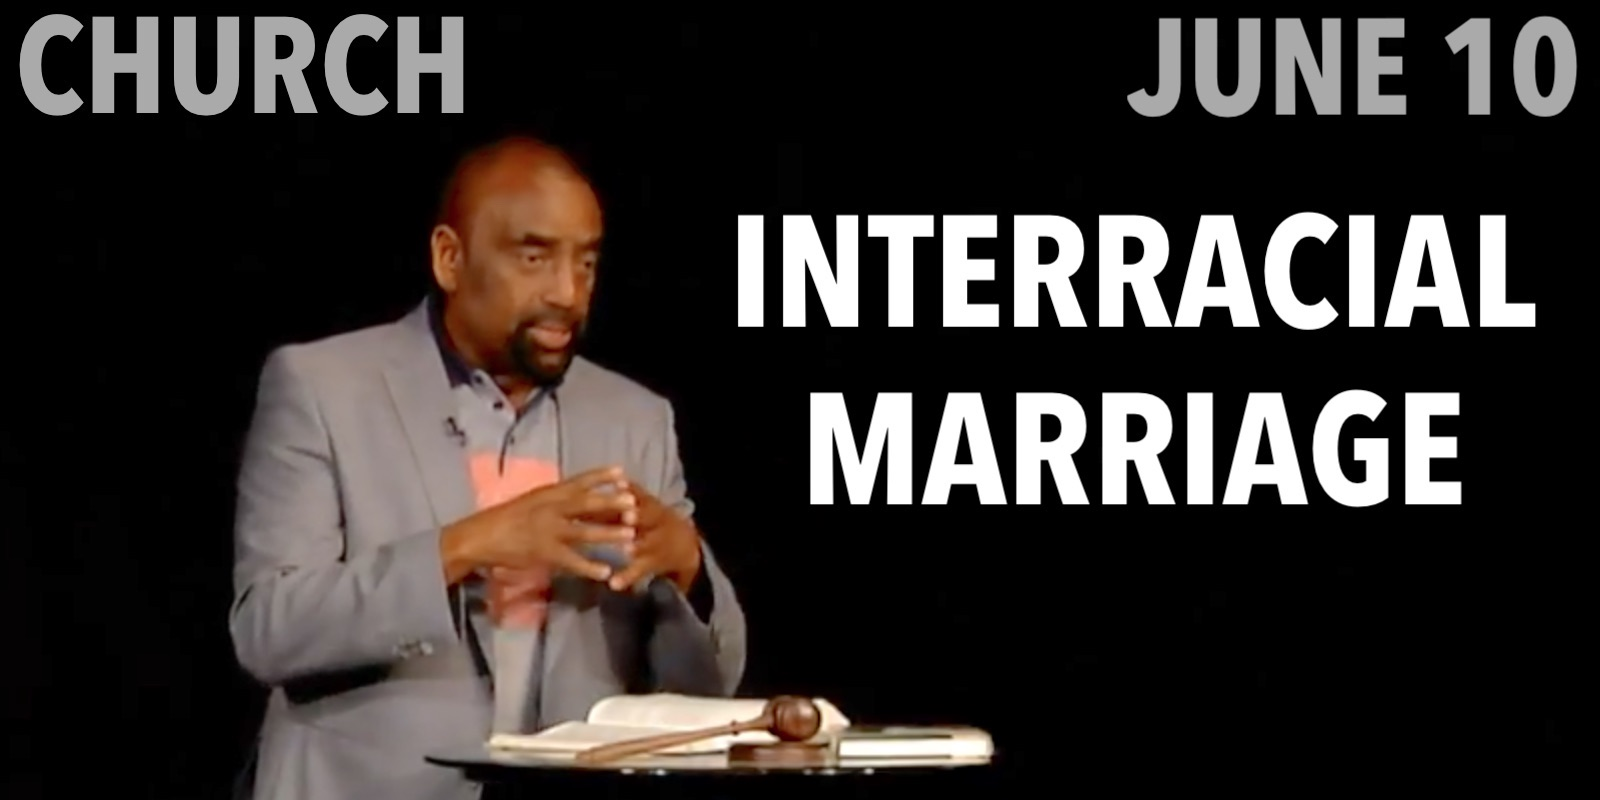 Jesse discusses interracial marriage at church